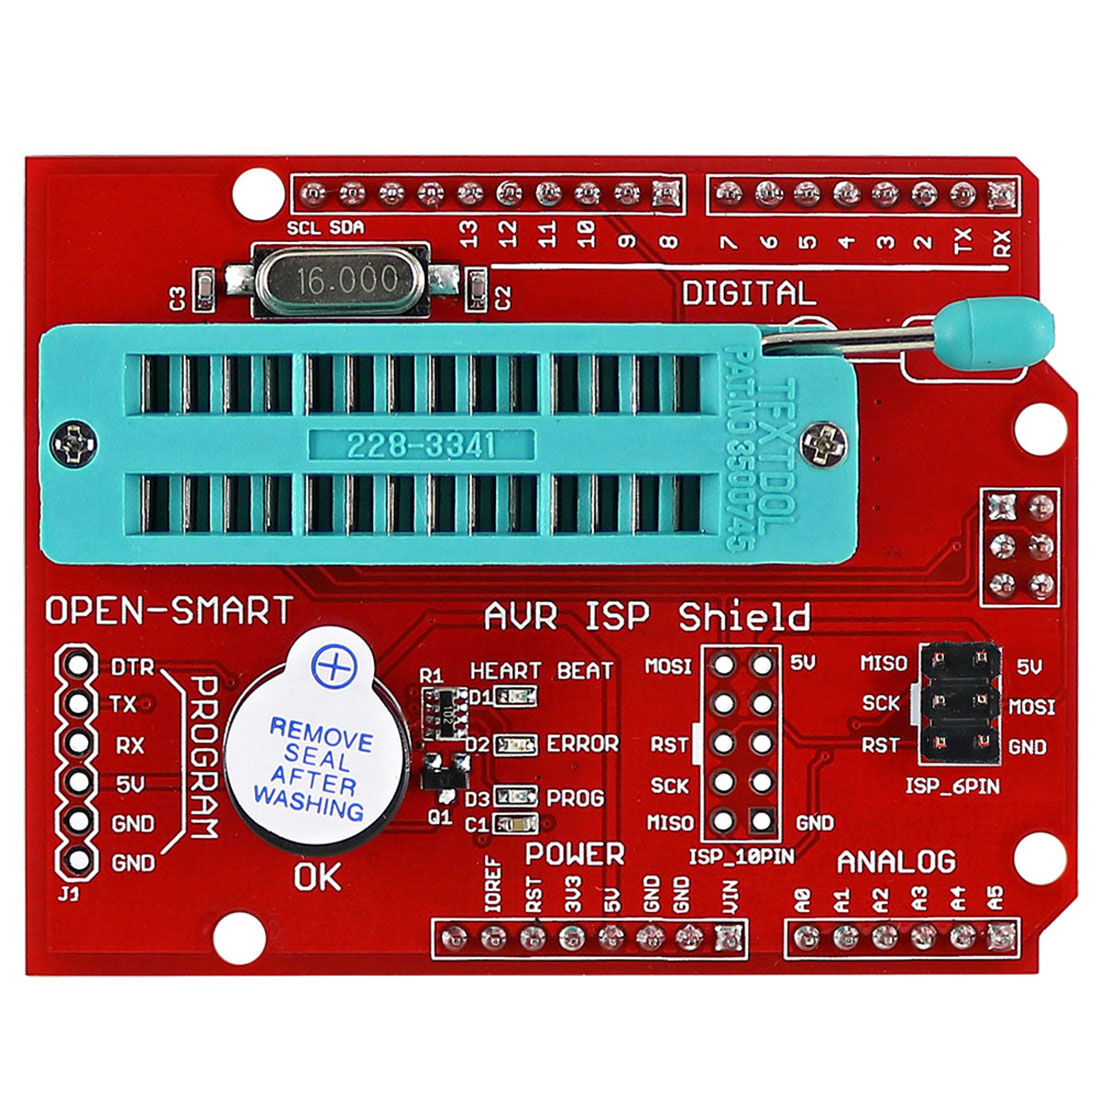 AVR ISP Shield Burning Bootloader Programmer For Arduino UNO R3  Programable Toys Accessories